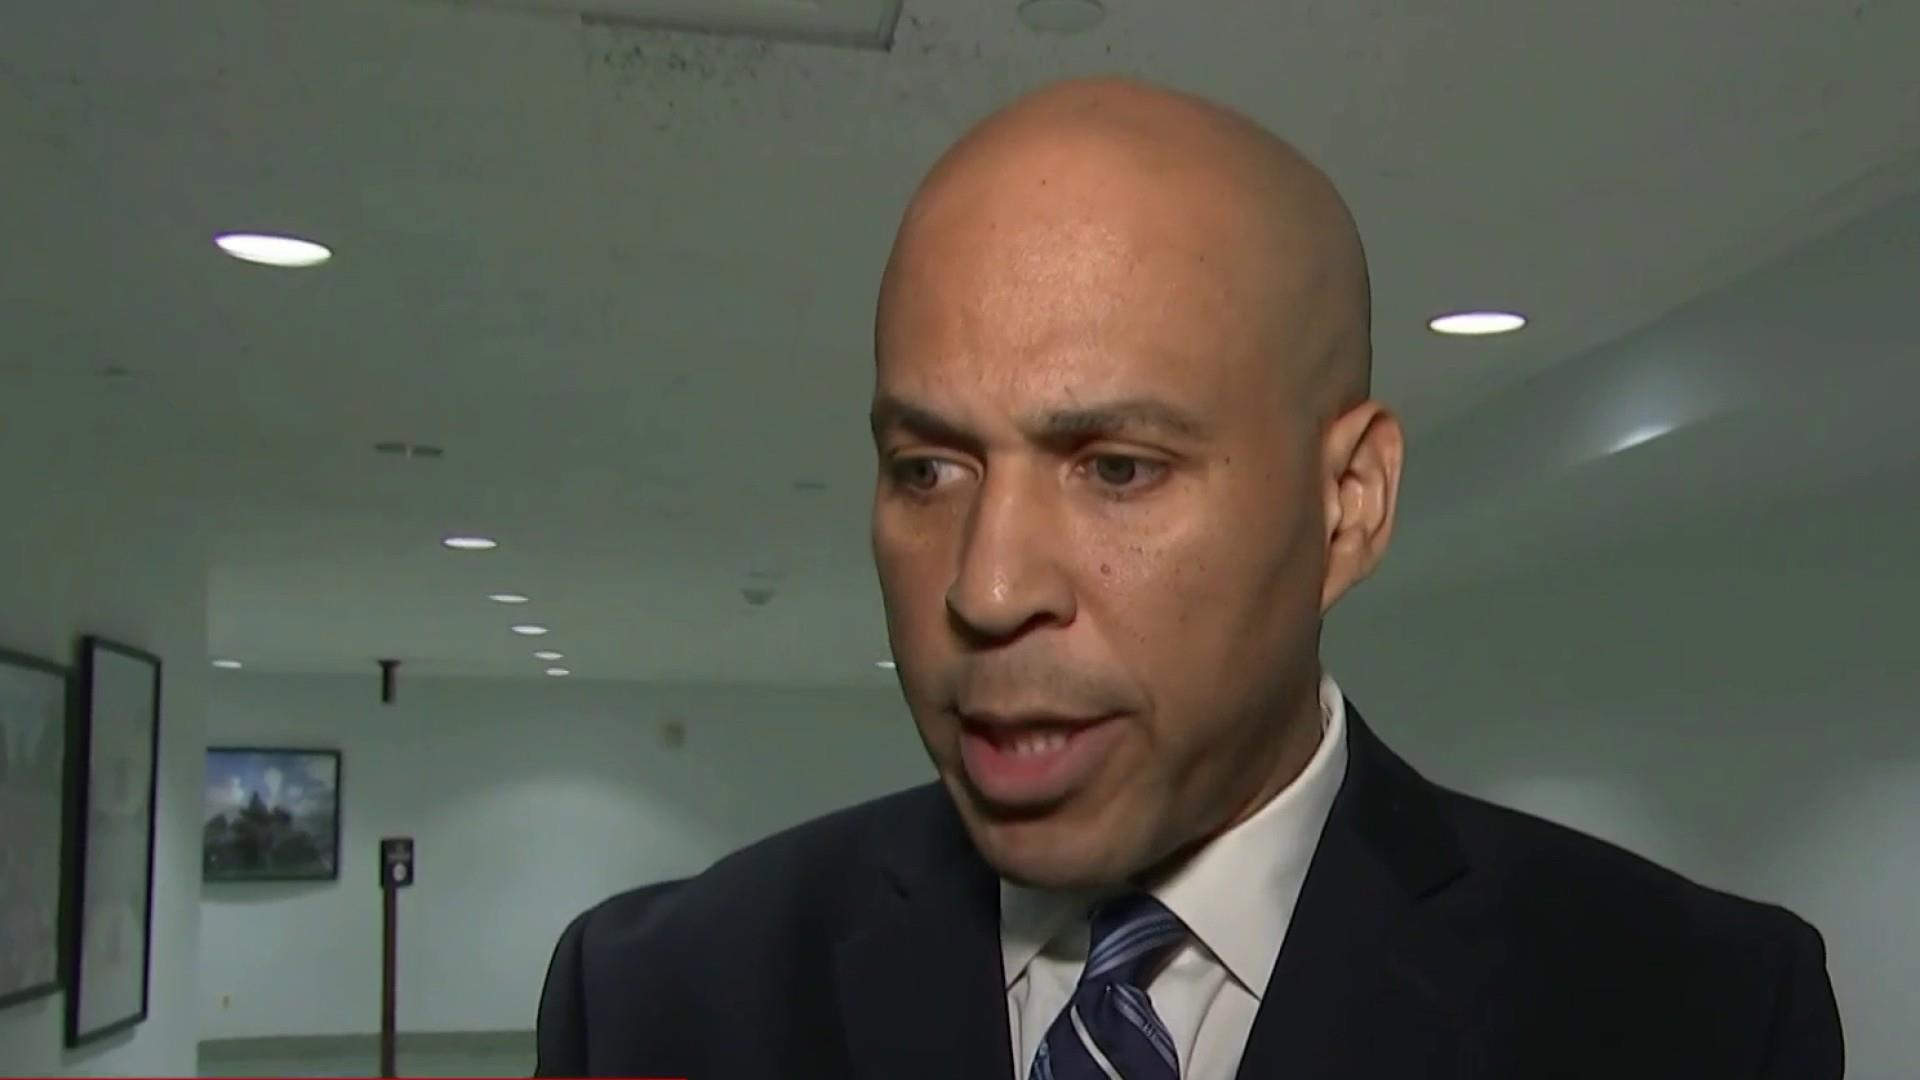 Dems frustrated that FBI didn't speak to Dr. Ford